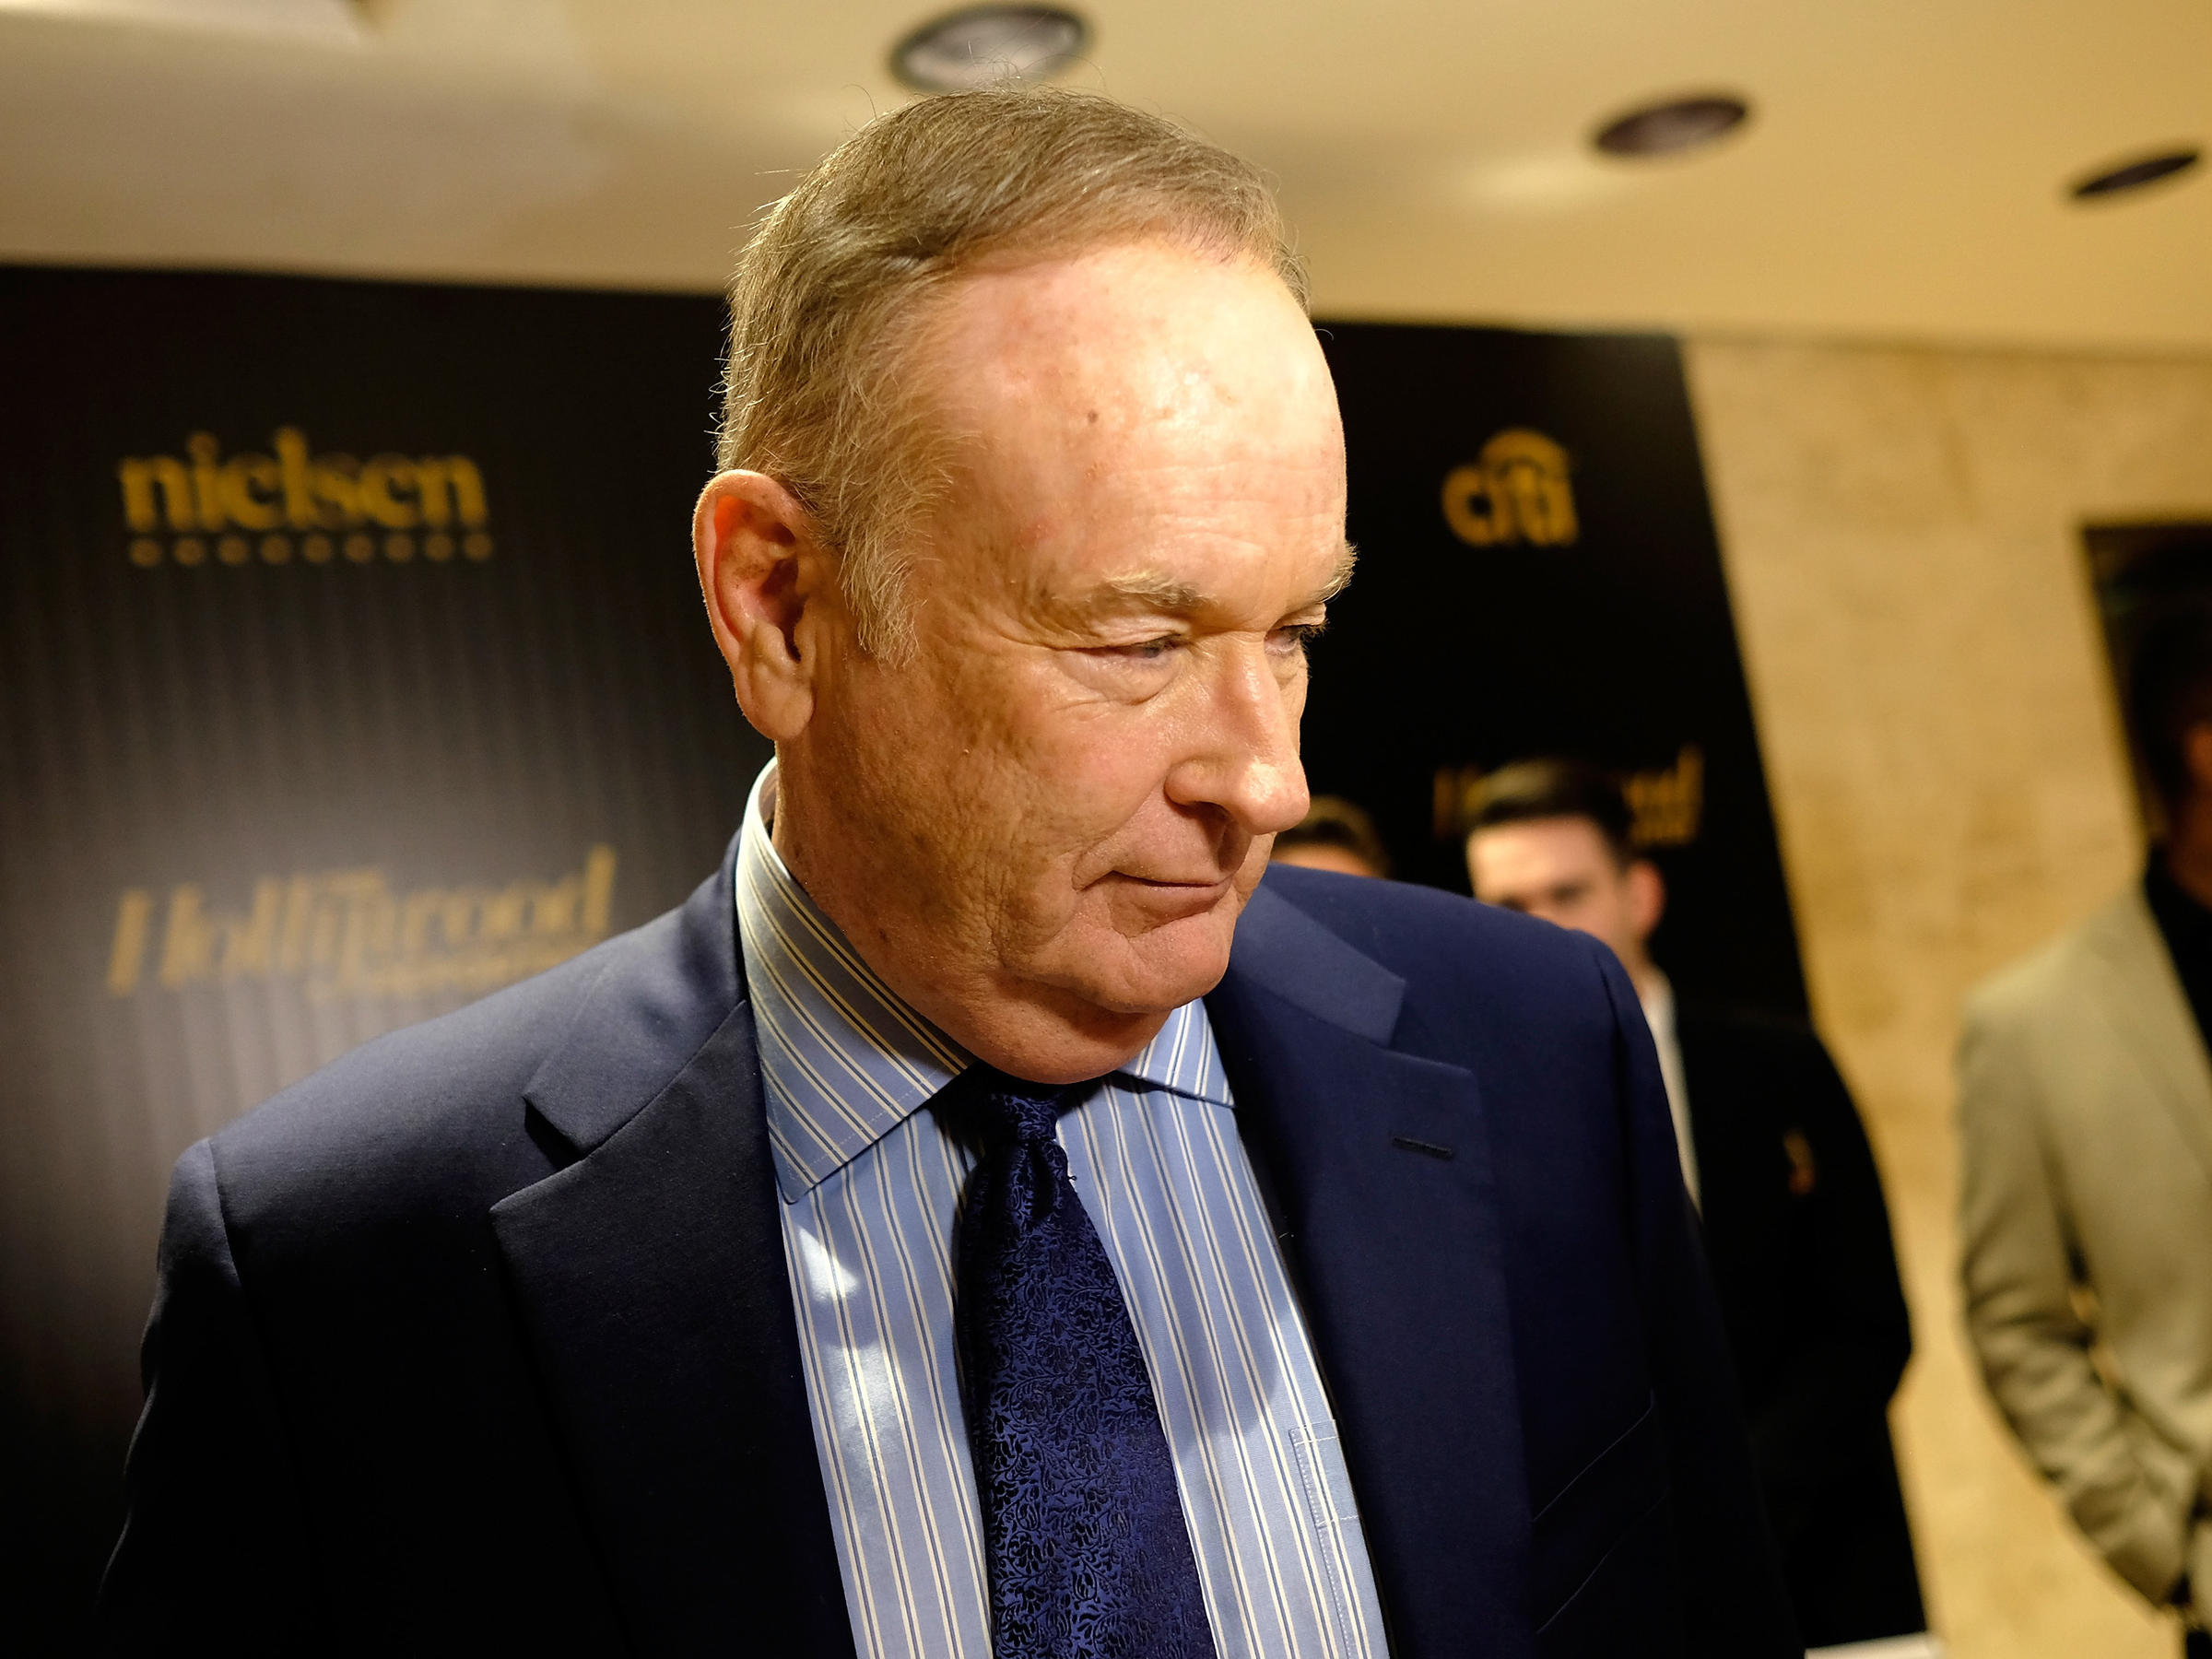 Who could replace Bill O'Reilly at Fox News?